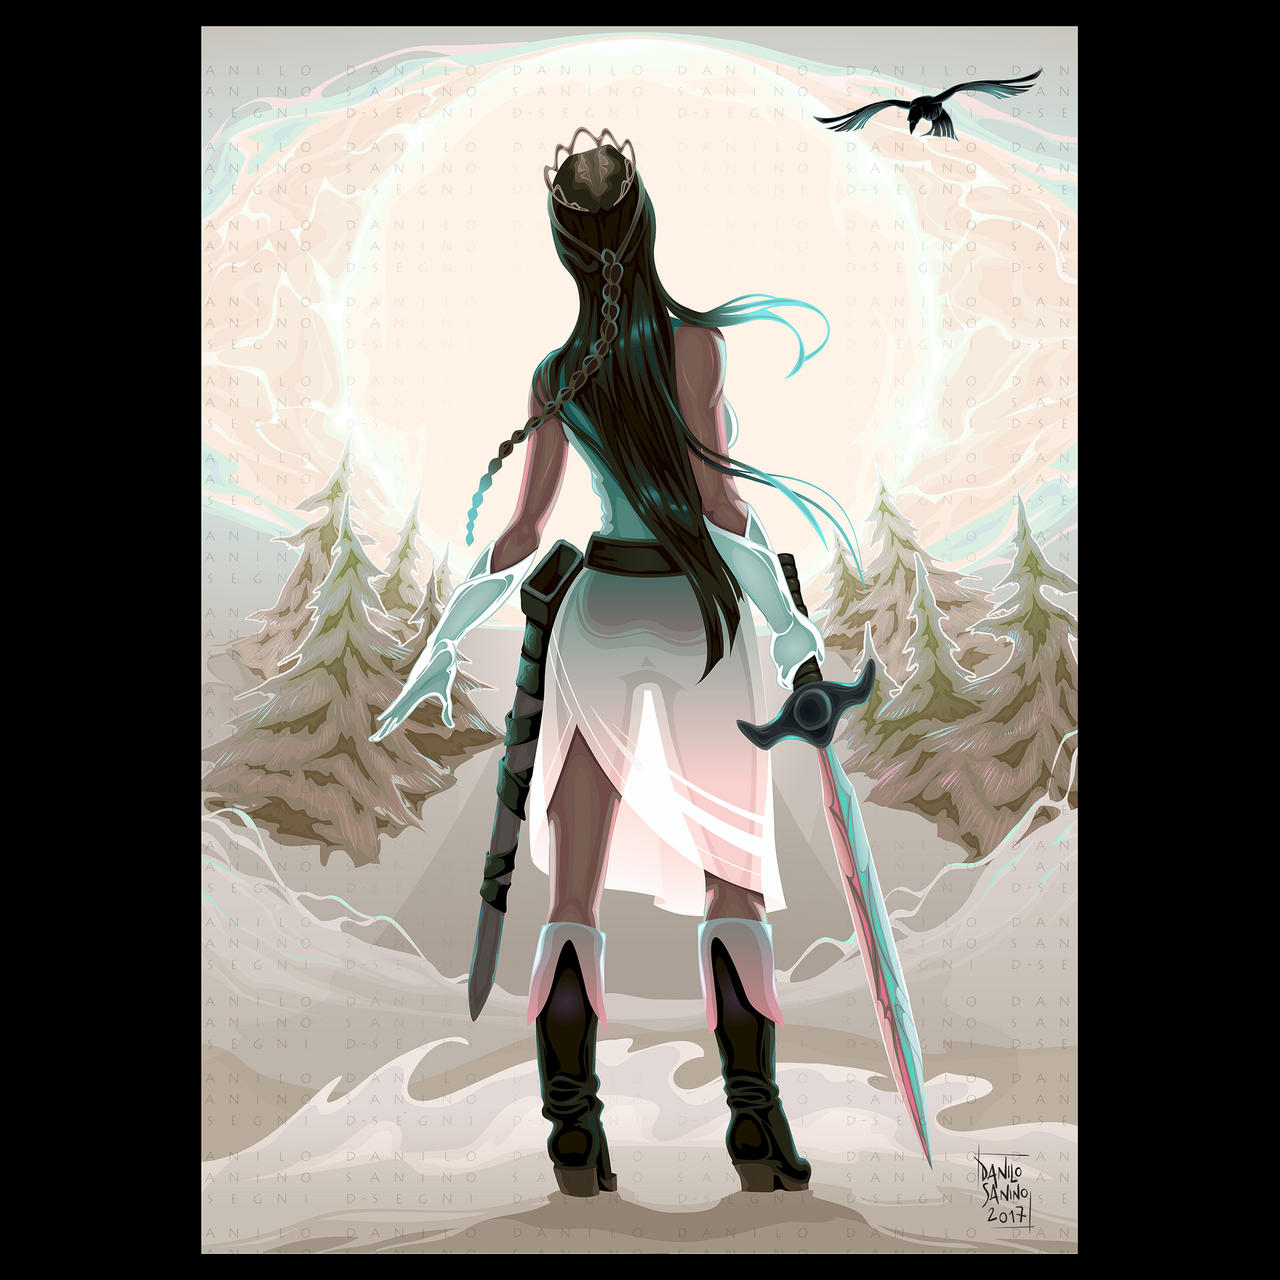 - Princess warrior in the wood -